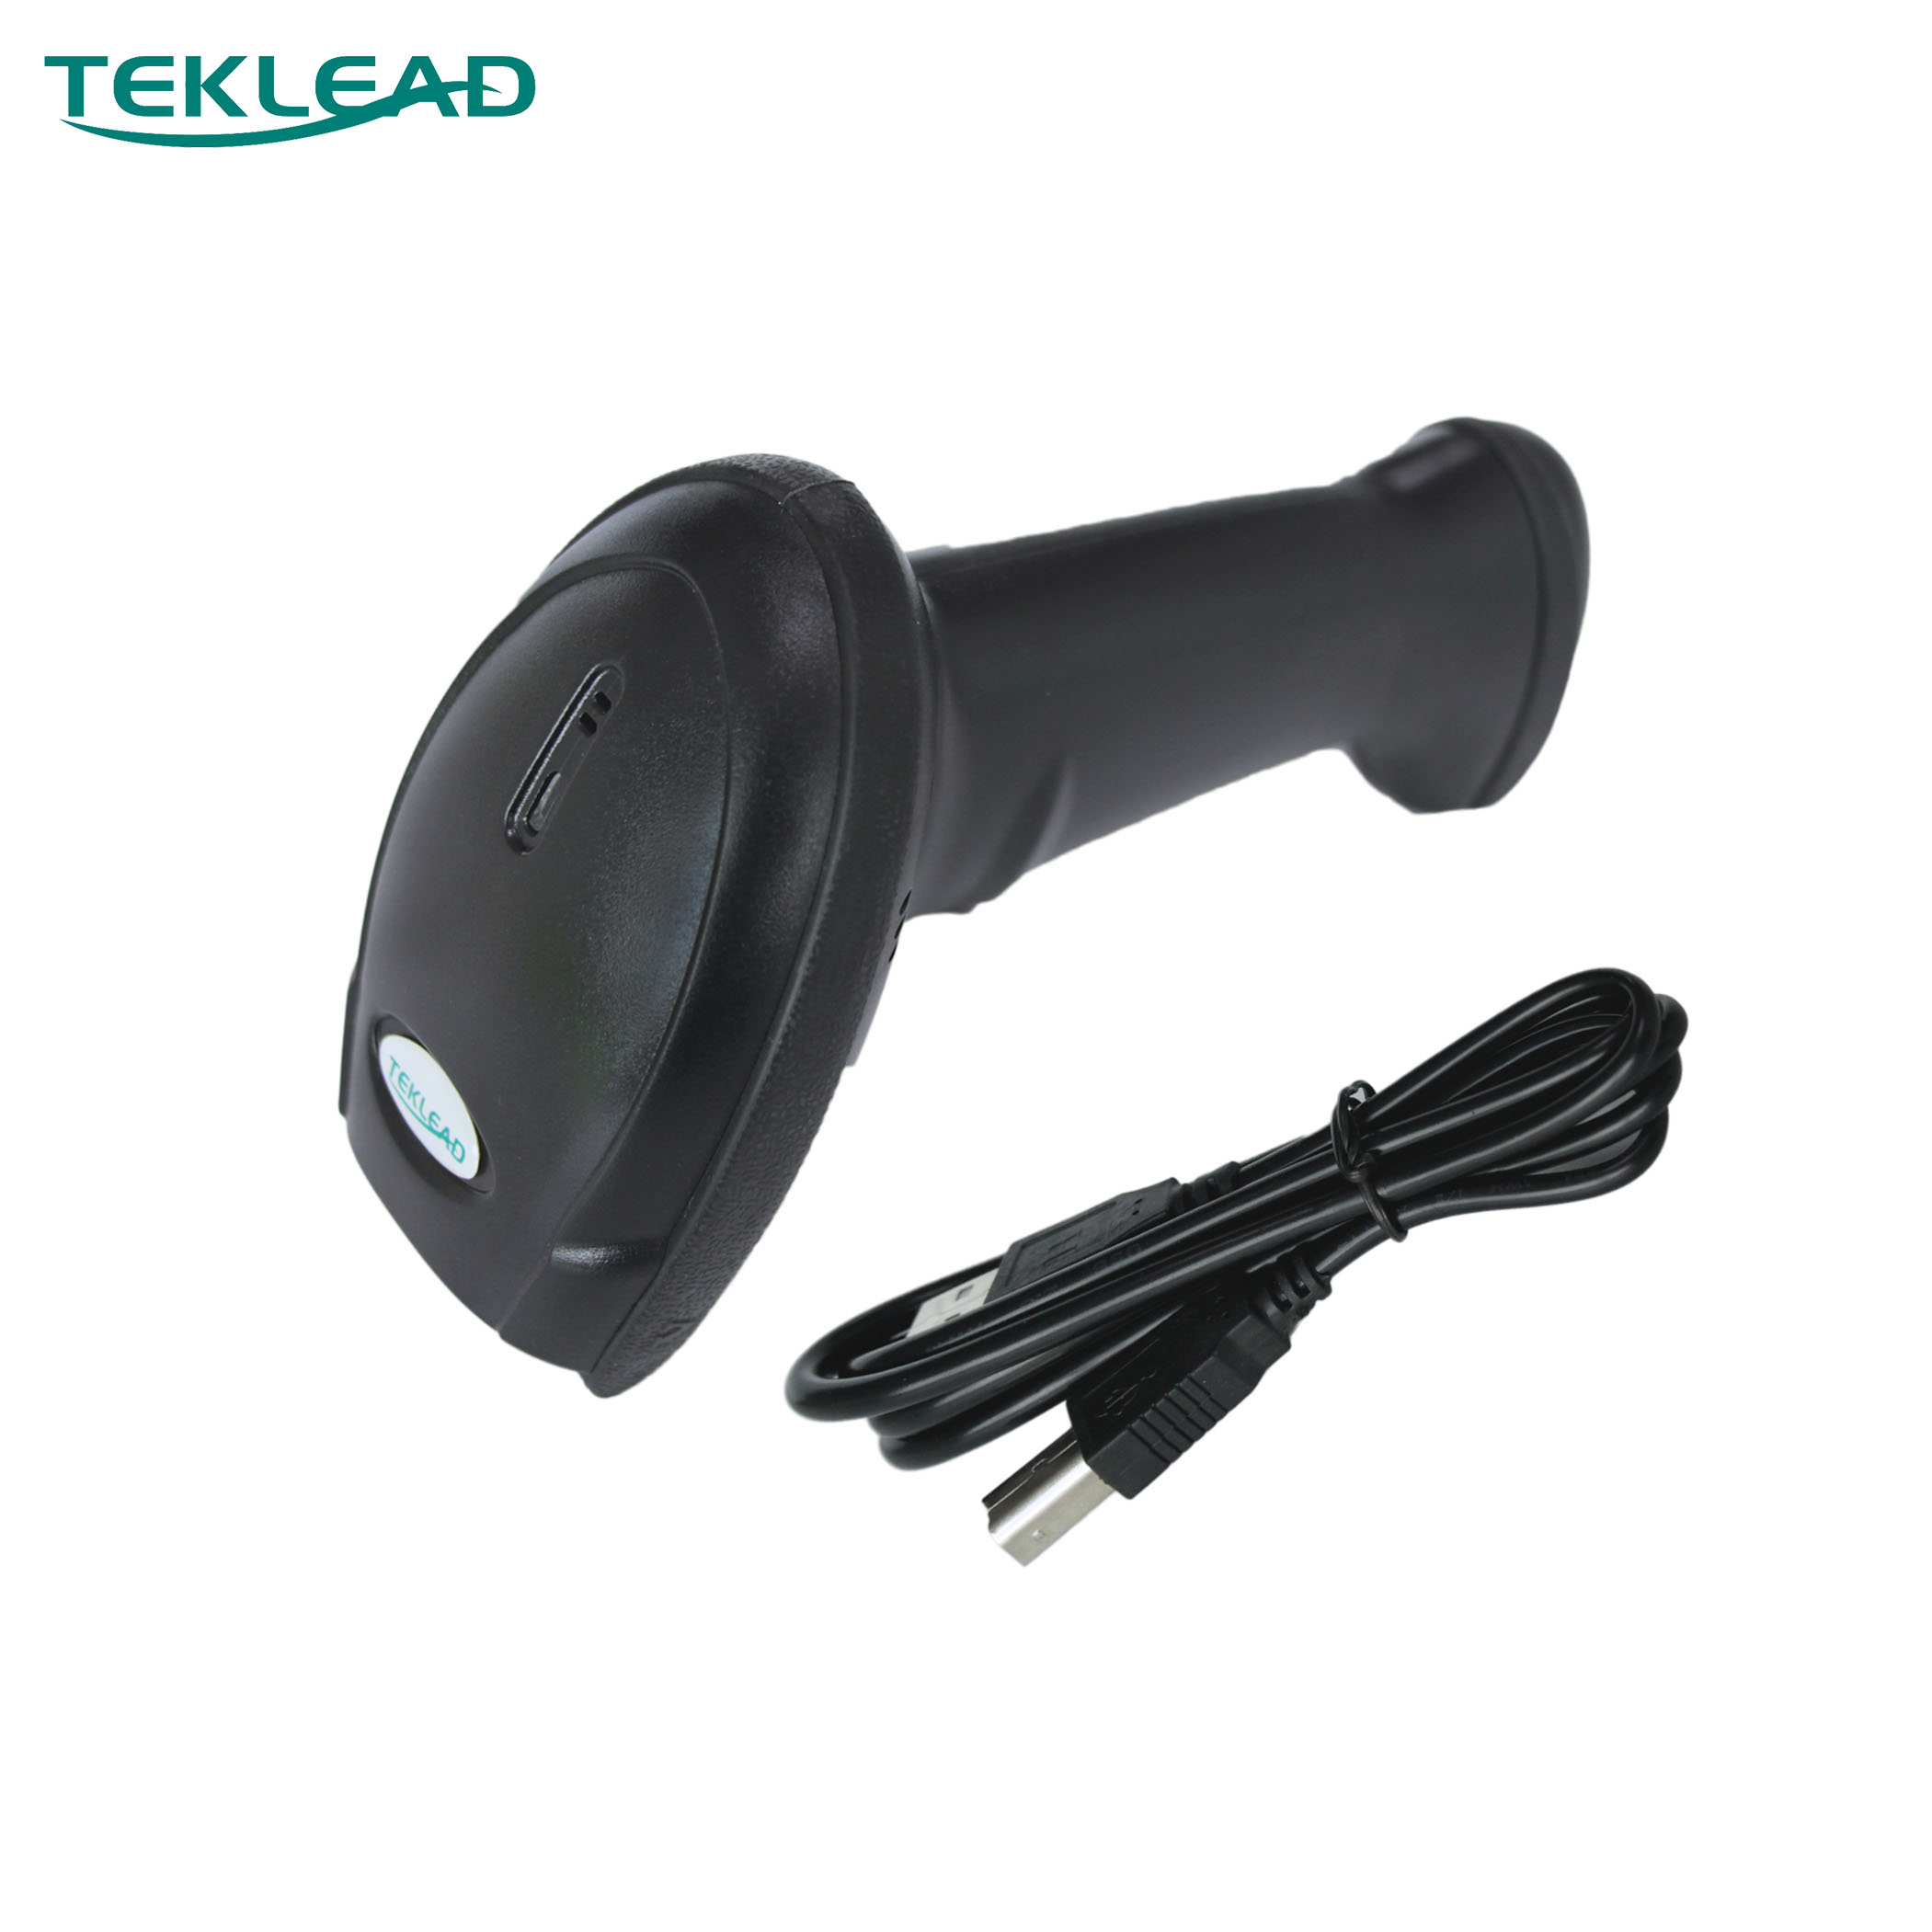 TEKLEAD 2D Barcode Scanner USB Wired QR Code Reader for Android Windows POS for Store, Supermarket, production Line title=